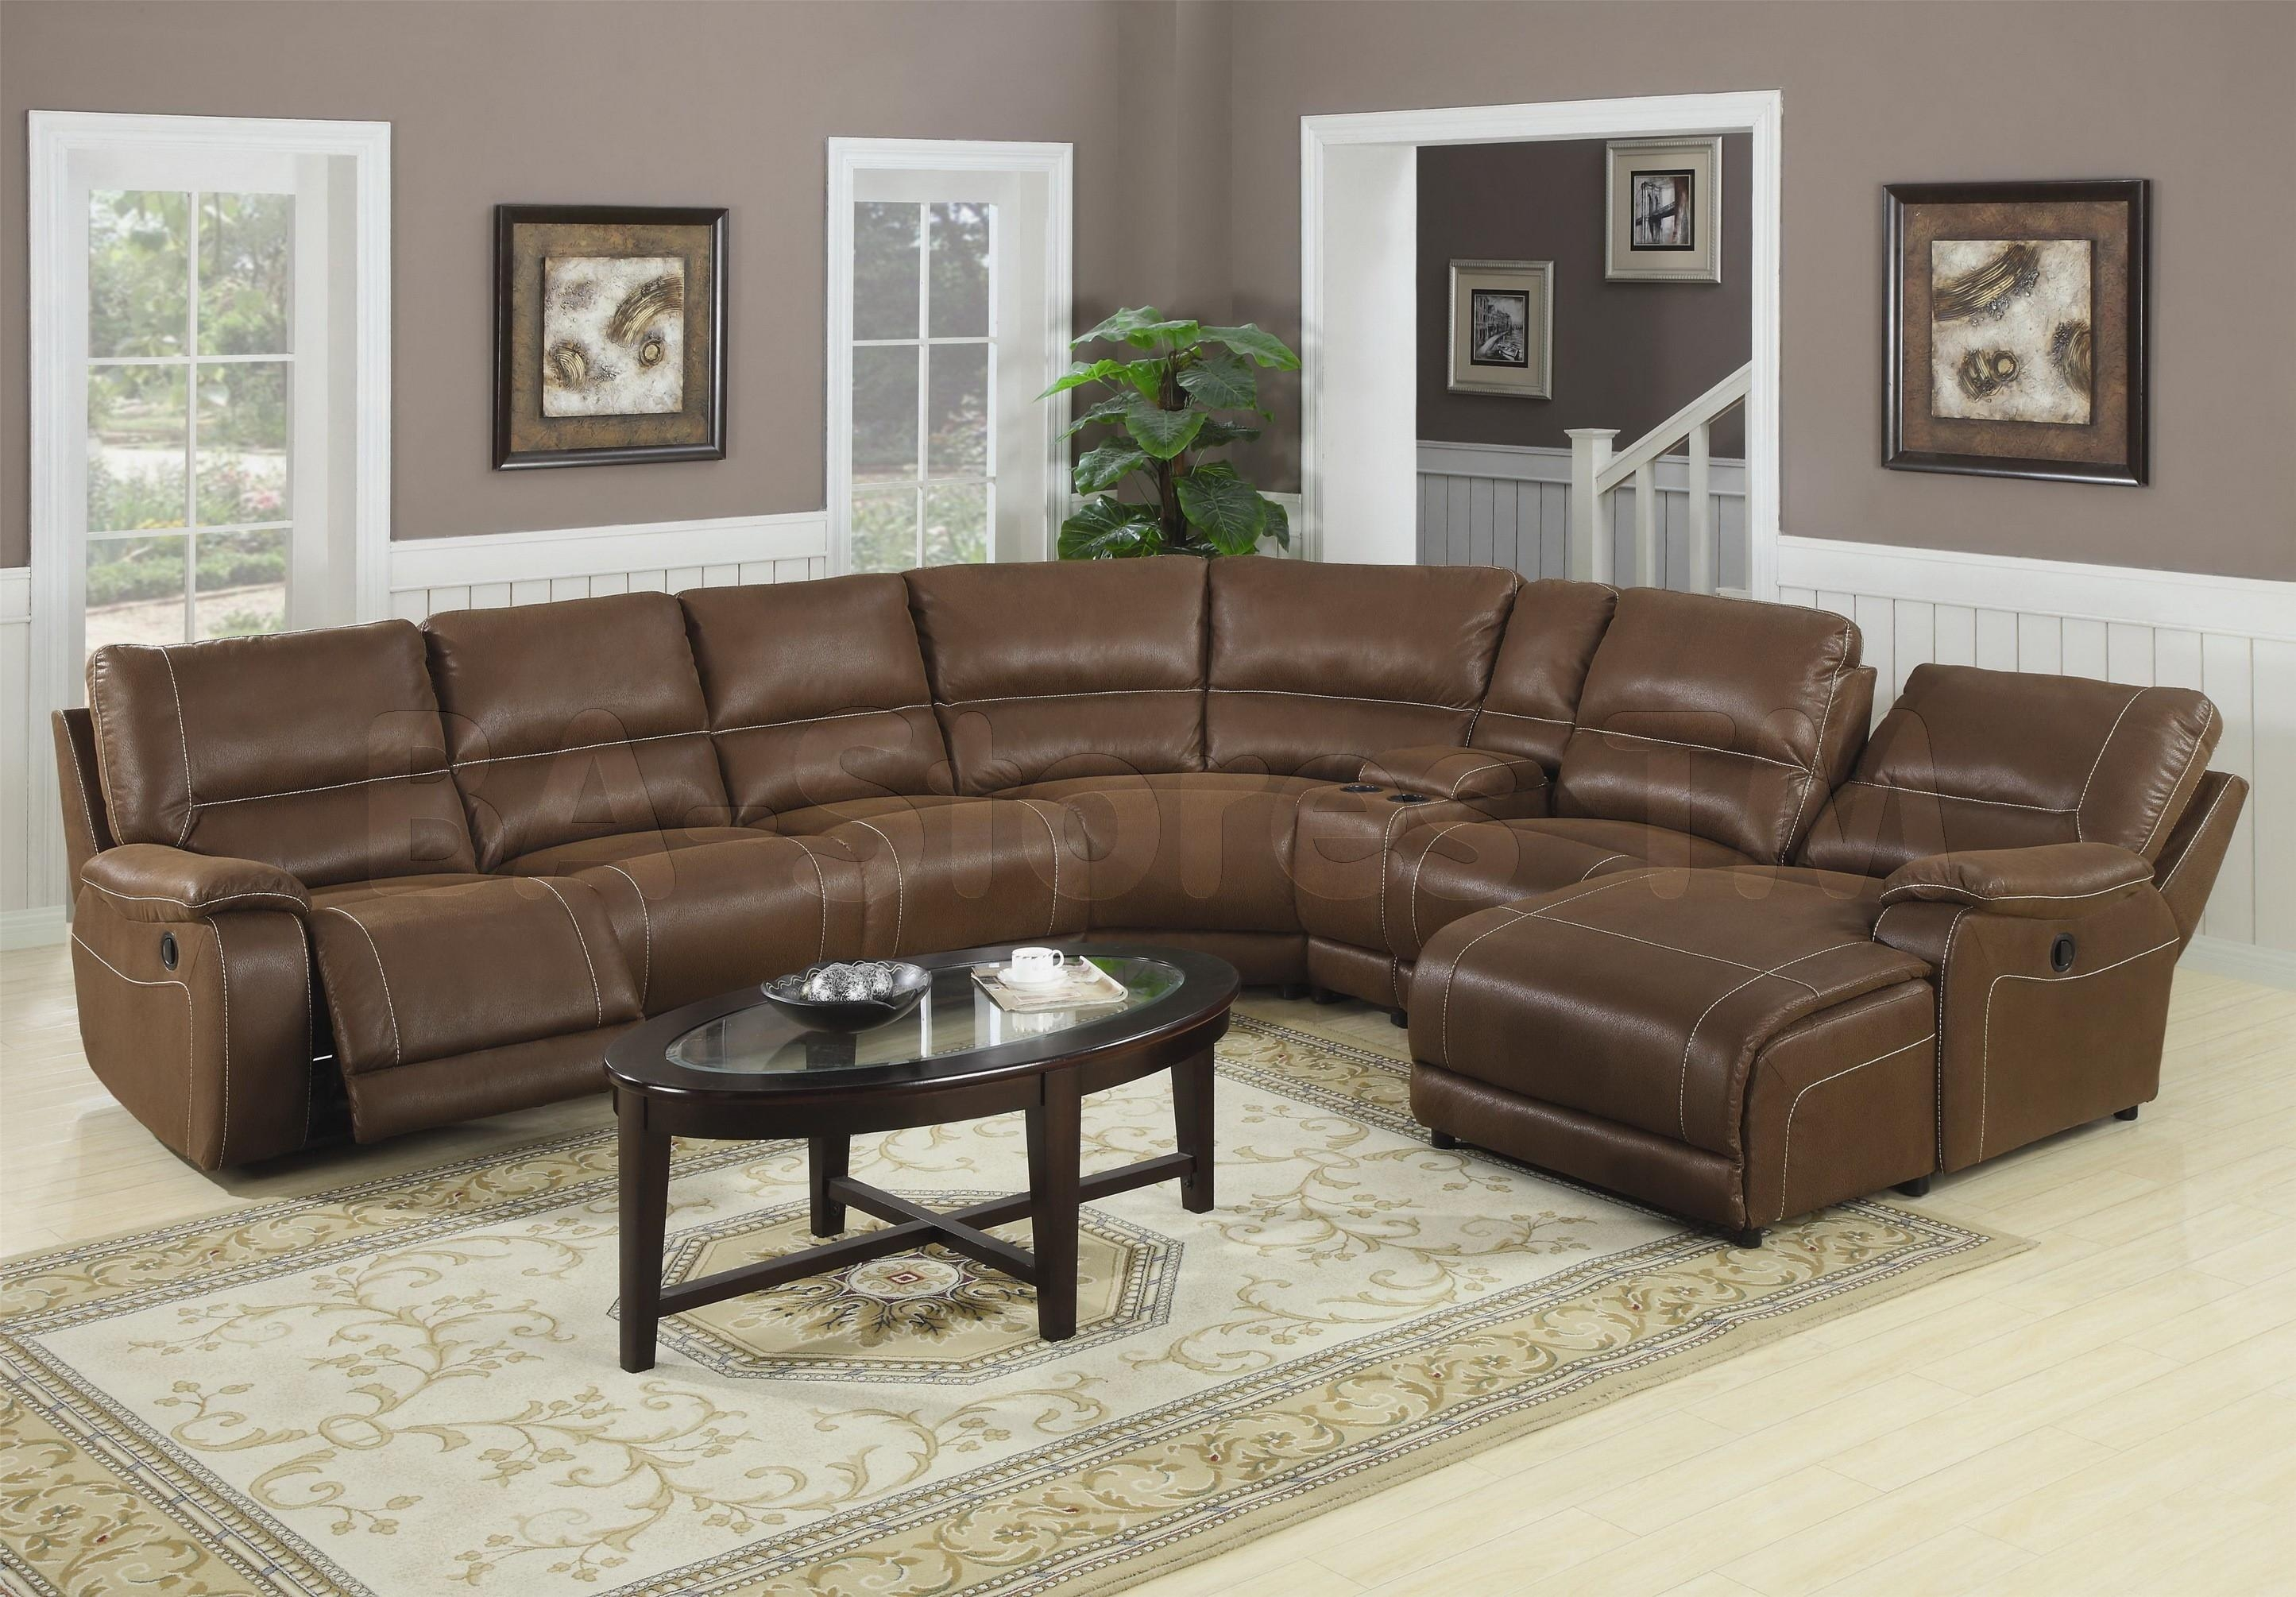 Furniture: Interesting Living Room Interior Using Large Sectional Within Microsuede Sectional Sofas (Image 7 of 20)